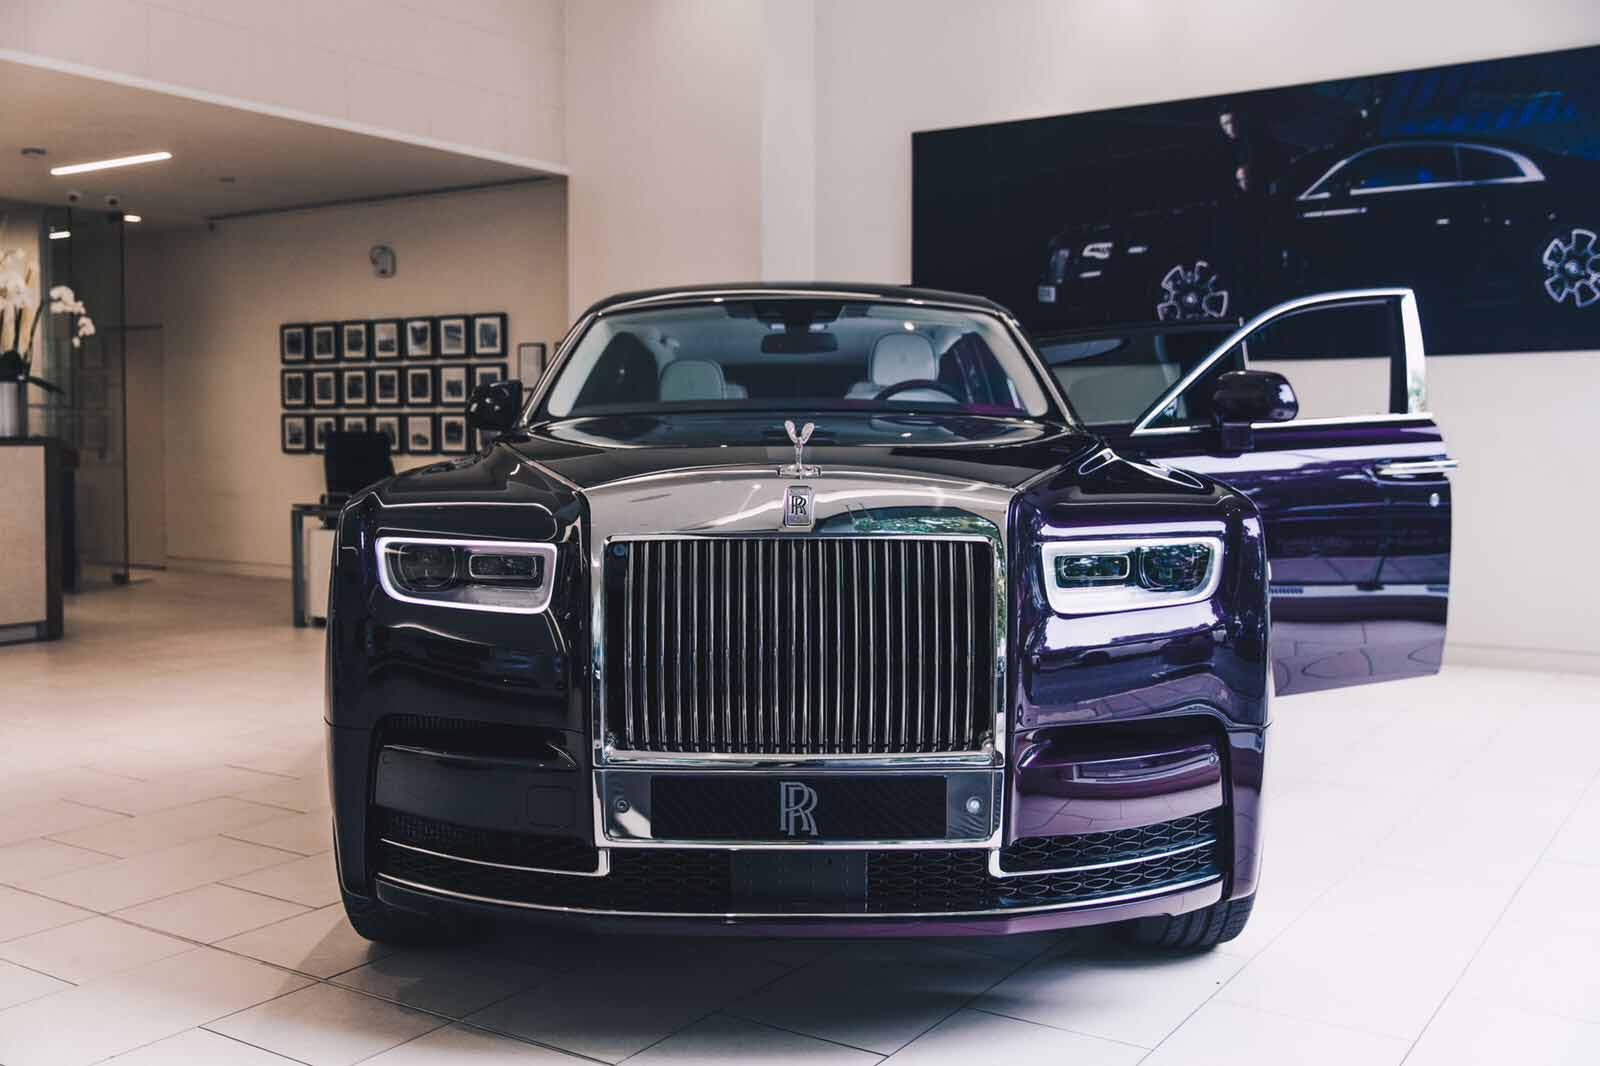 Rolls Royce Wraith Insurance >> This 2018 Rolls-Royce Phantom is Purple on Purple Perfection » AutoGuide.com News